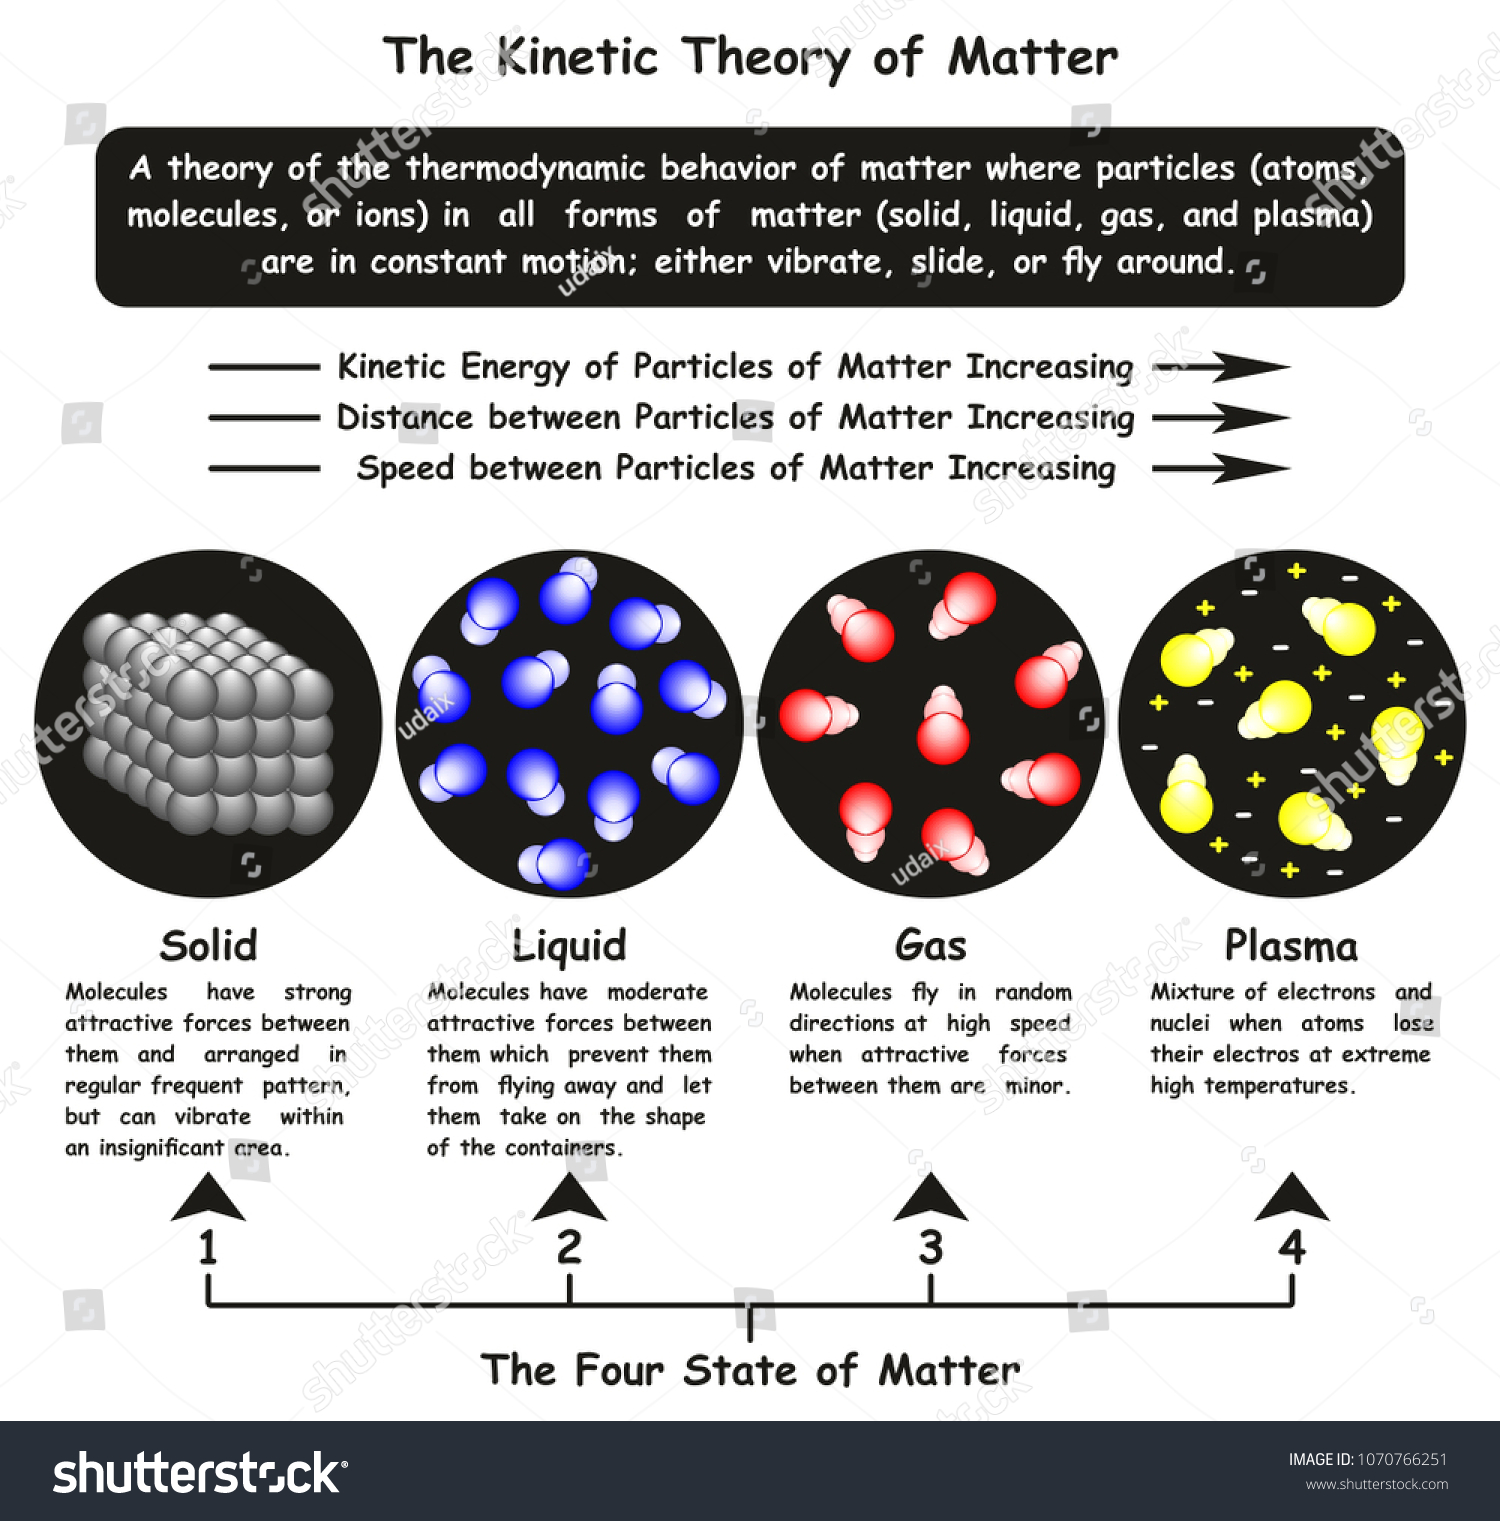 hight resolution of the kinetic theory of matter infographic diagram showing four state solid liquid gas and plasma and particles motion and relation of energy speed distance